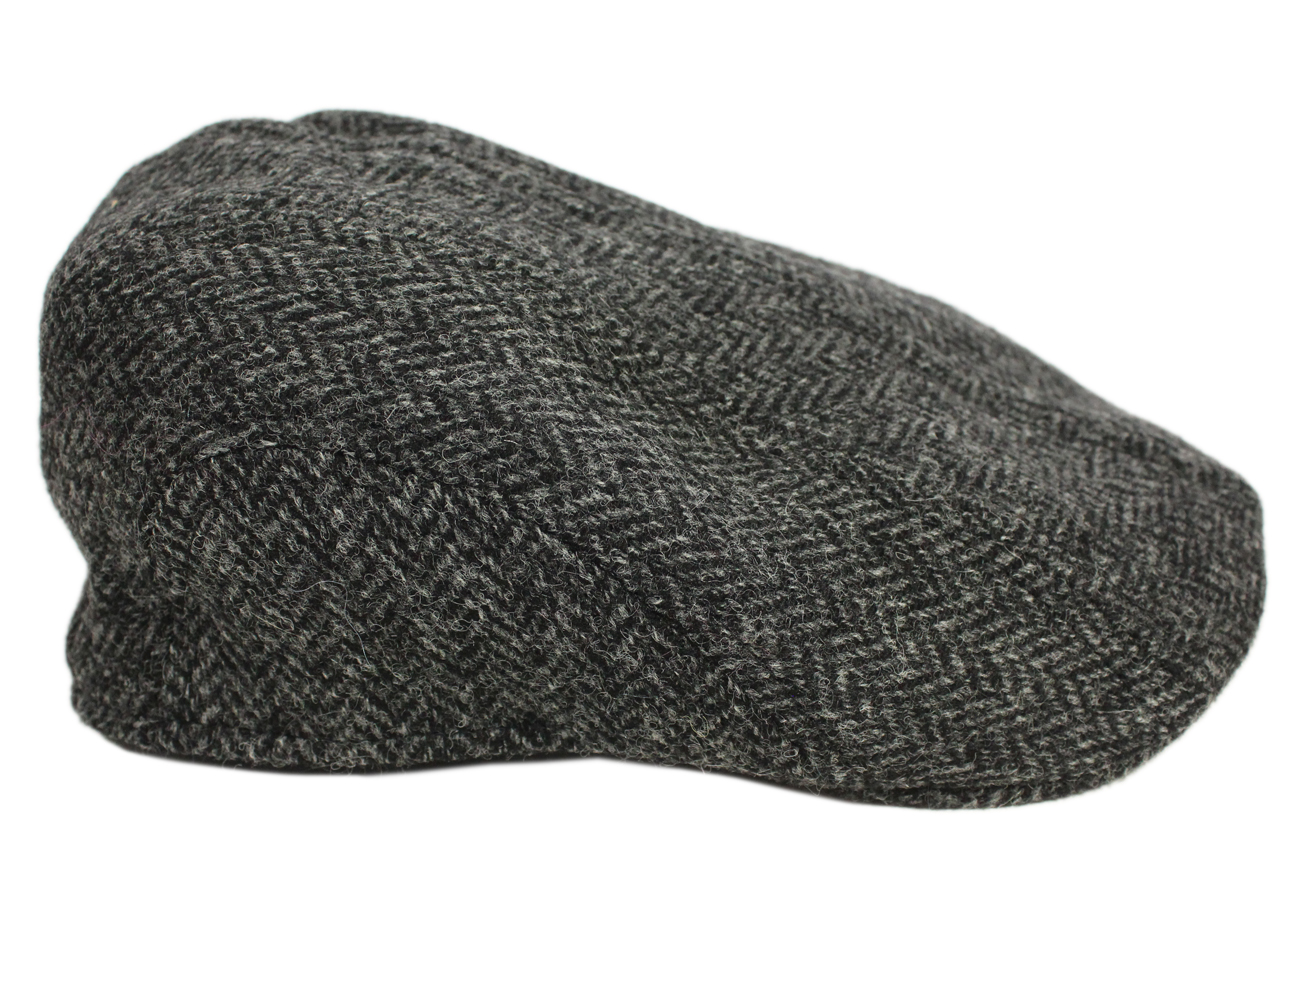 New Duckbill Touring Cap Irish Made Tweed Structured Crafted by John Hanly /& Co